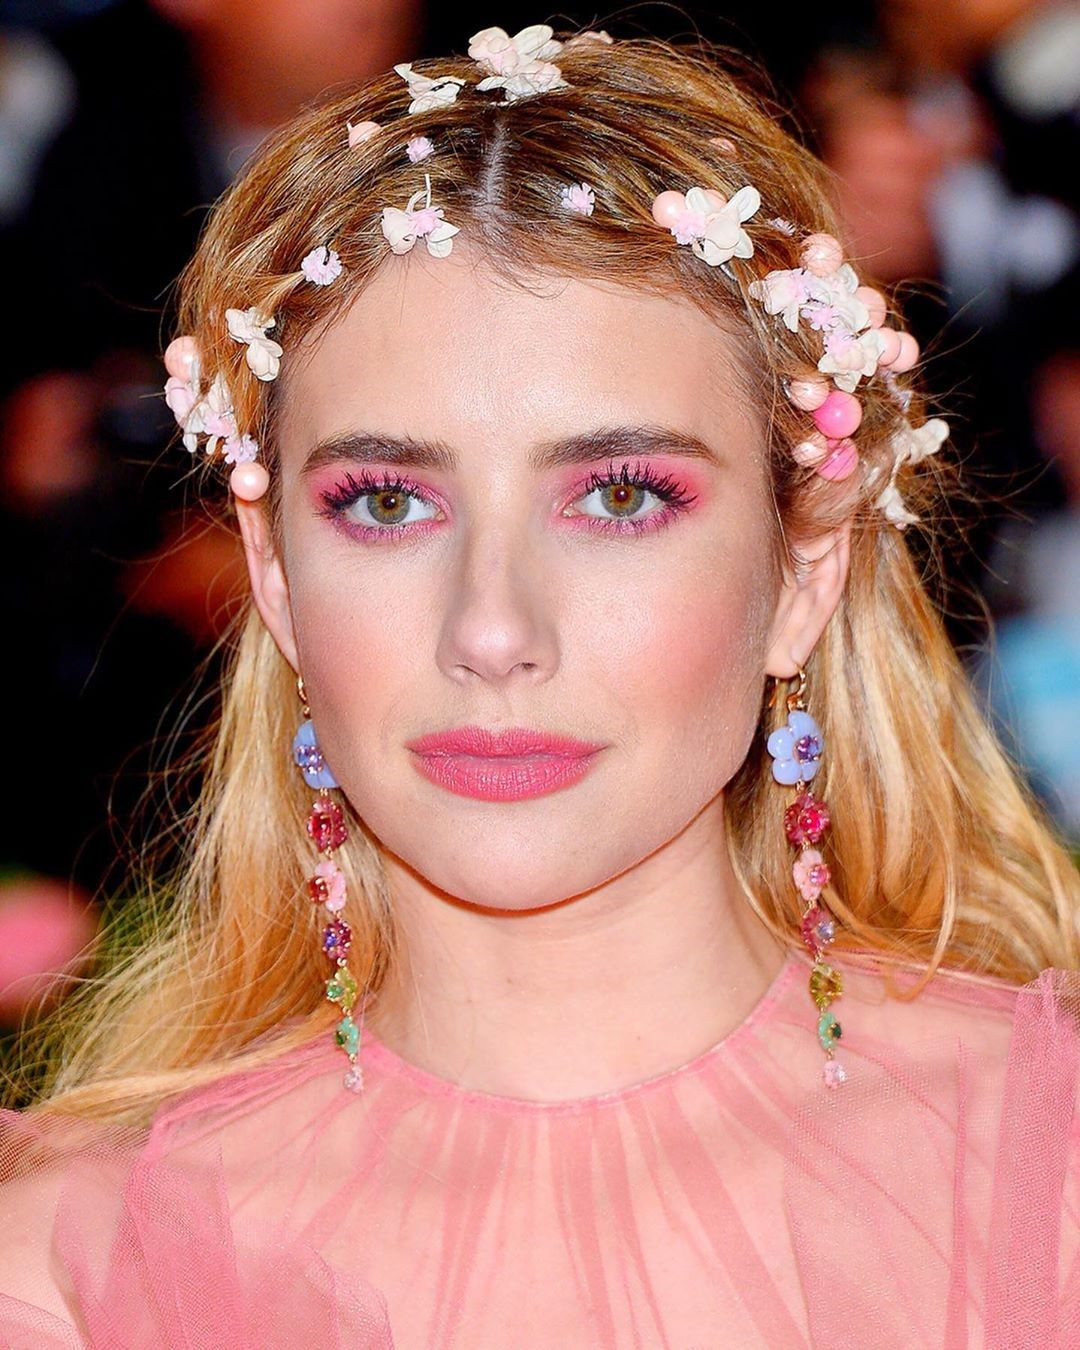 #emmaroberts #boringhair boring hair, fix boring hair, boring hair makeover, emma roberts hair, emma roberts haircut, emma roberts makeup, emma roberts style, boring hair what to do, what to do boring hair, boring hair hairstyles, hairstyles boring hair, boring hair ideas, life is too short to have boring hair, emma roberts aesthetic